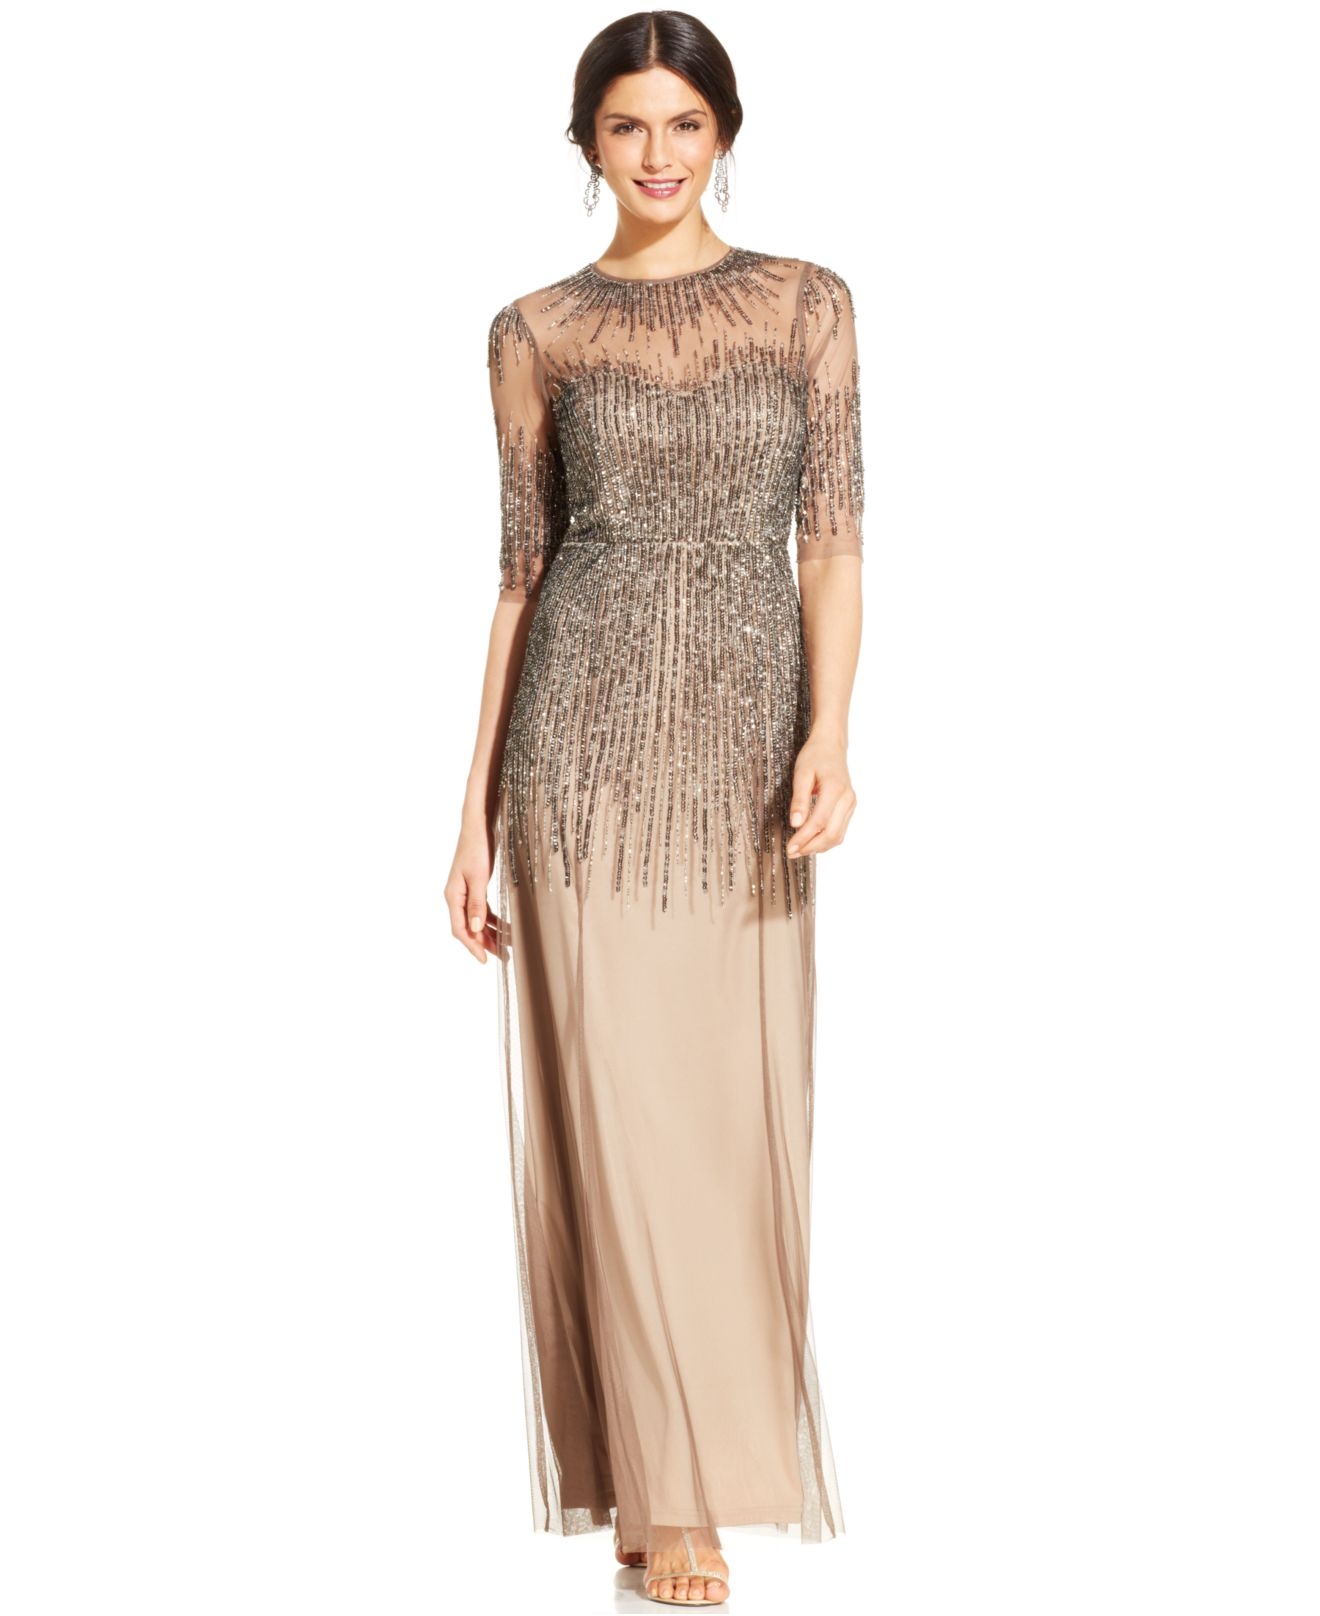 Lyst - Adrianna Papell Elbow-sleeve Illusion Embellished Gown in Gray